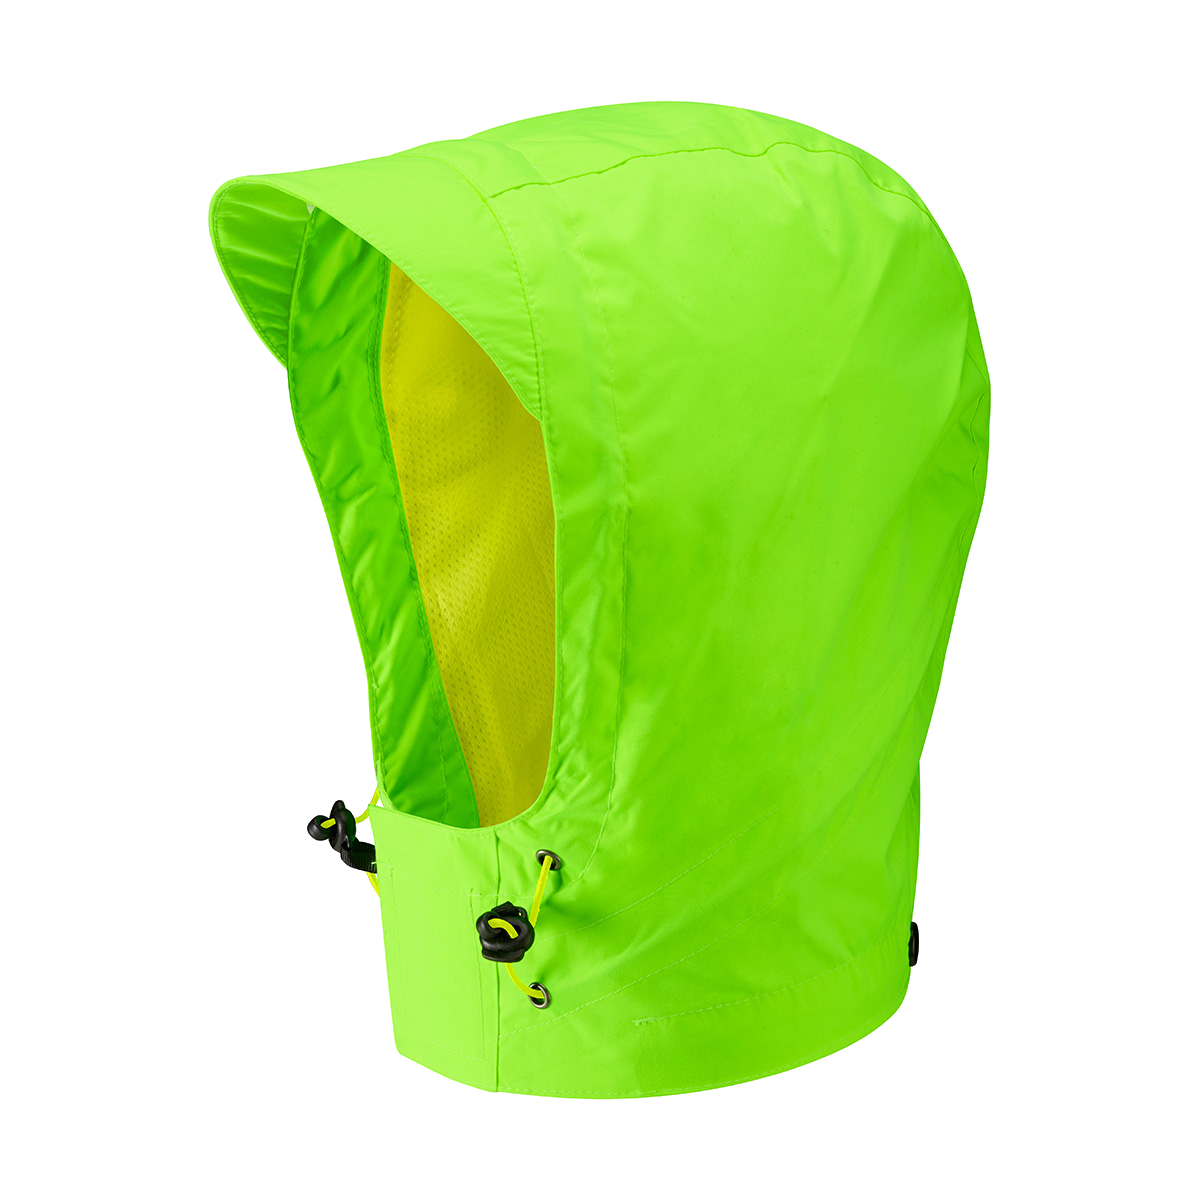 ALTURA NIGHTVISION EVO HOOD 2016: DYNAMIC BLUE ONE SIZE